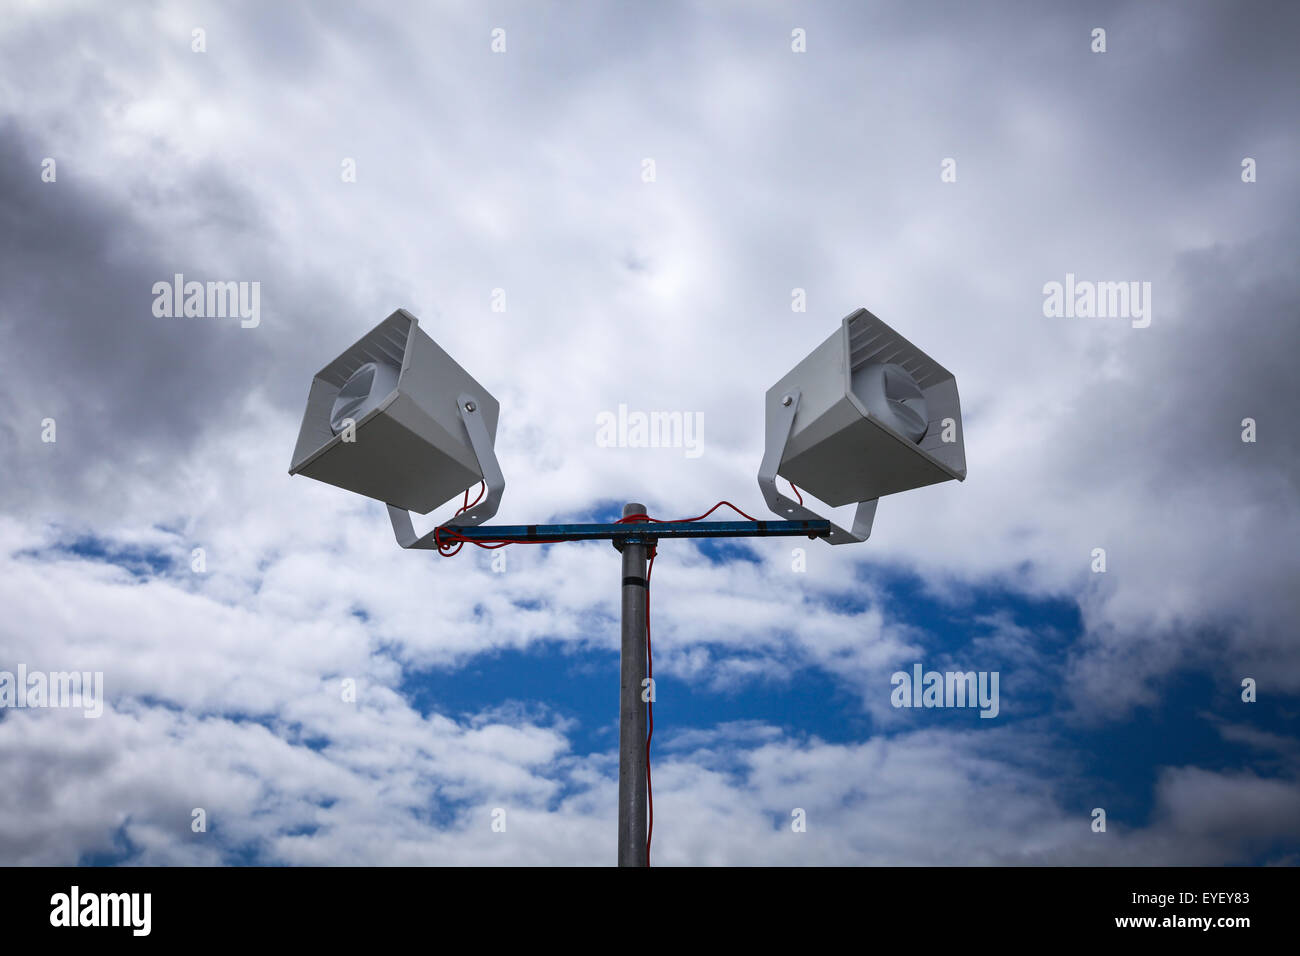 public address system PA system in front of a dramatic cloudy sky - Stock Image